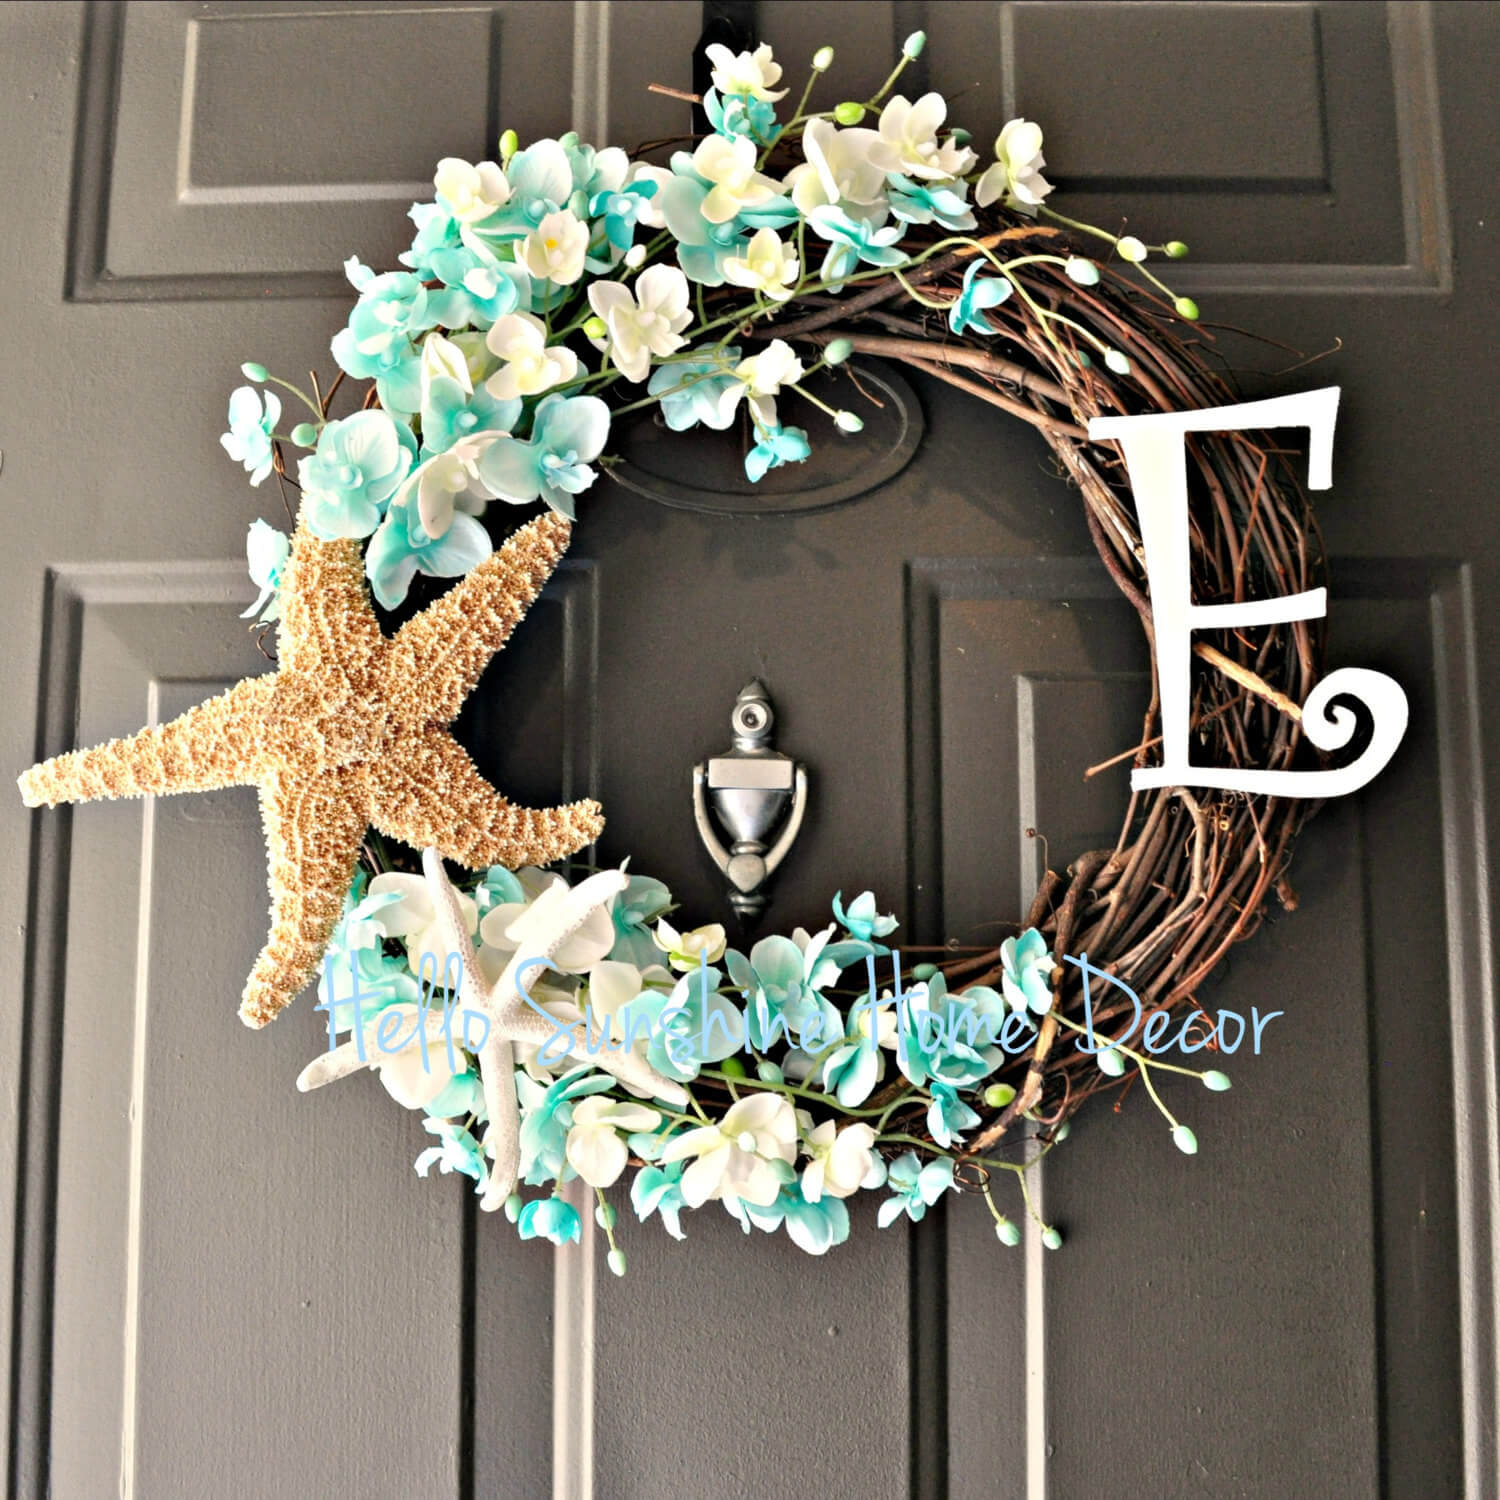 34 Best Beach and Coastal Decorating Ideas and Designs for ...